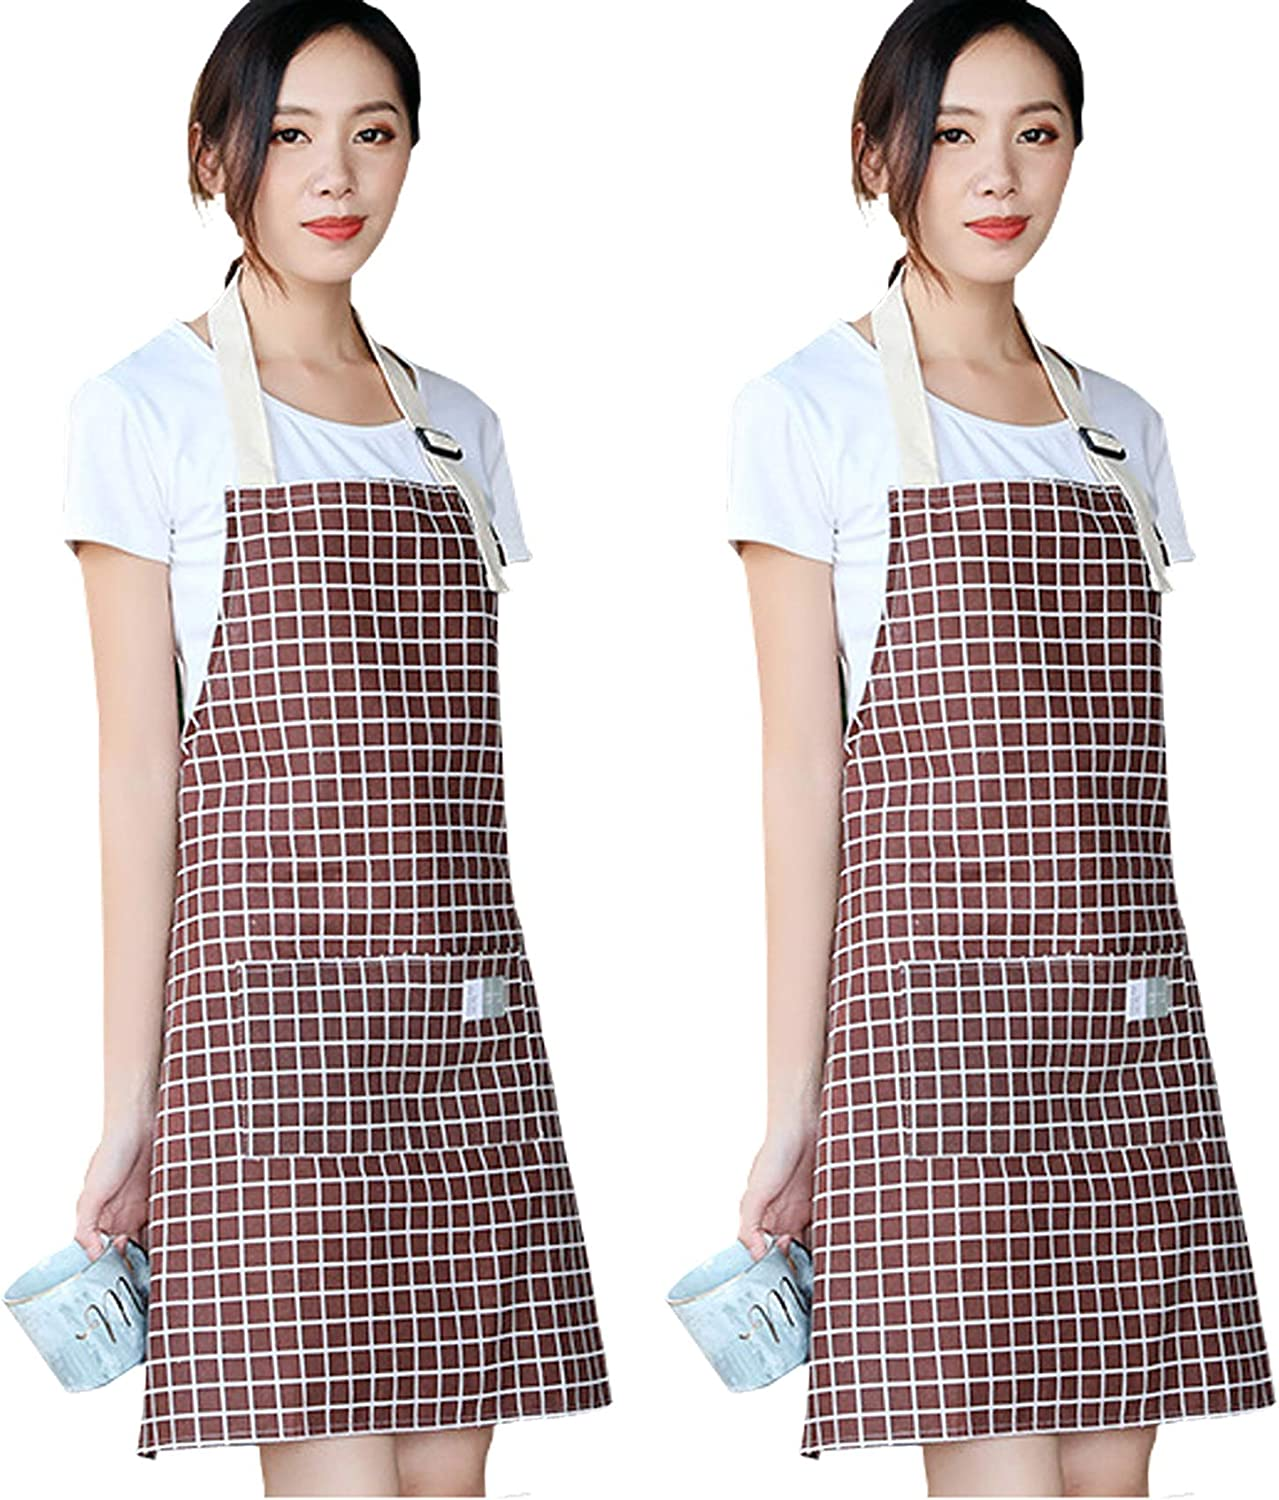 Apron Pocket /'Let The Weekend Be Gin/'100/%Cotton Twill Chef Adult Cooking Unisex